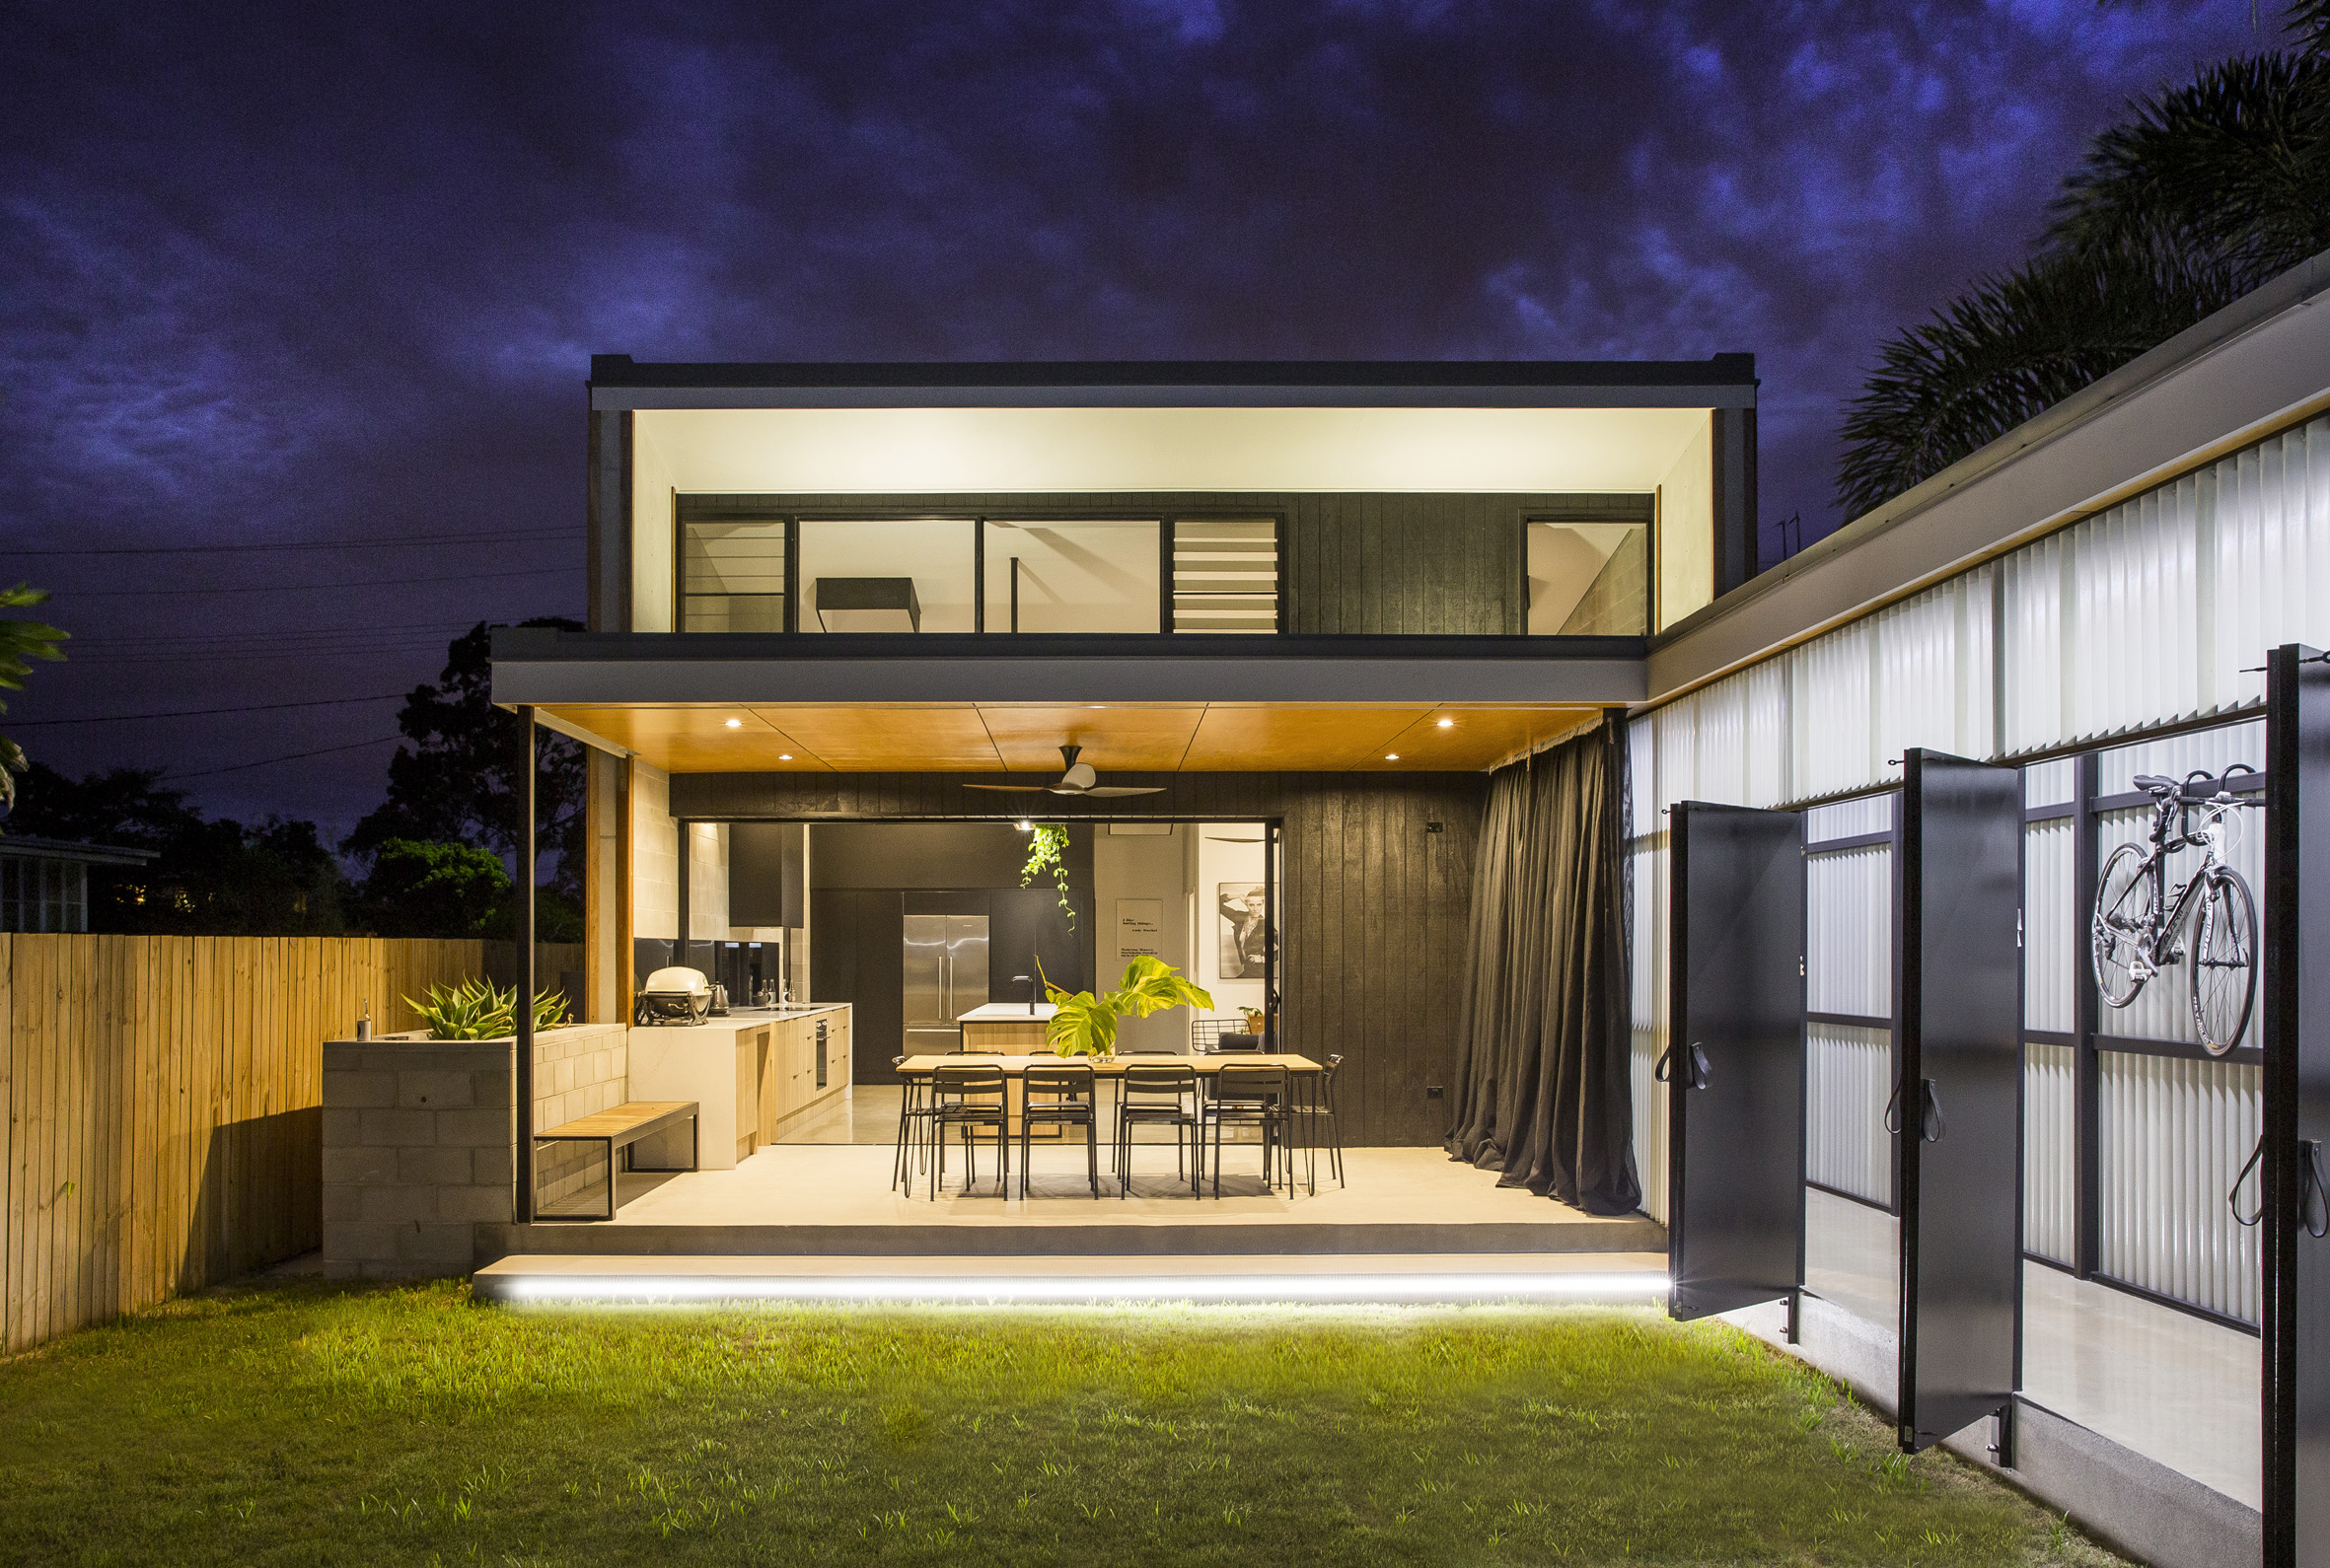 Covered outdoor dining spills onto a courtyard in this for Clerestory house designs